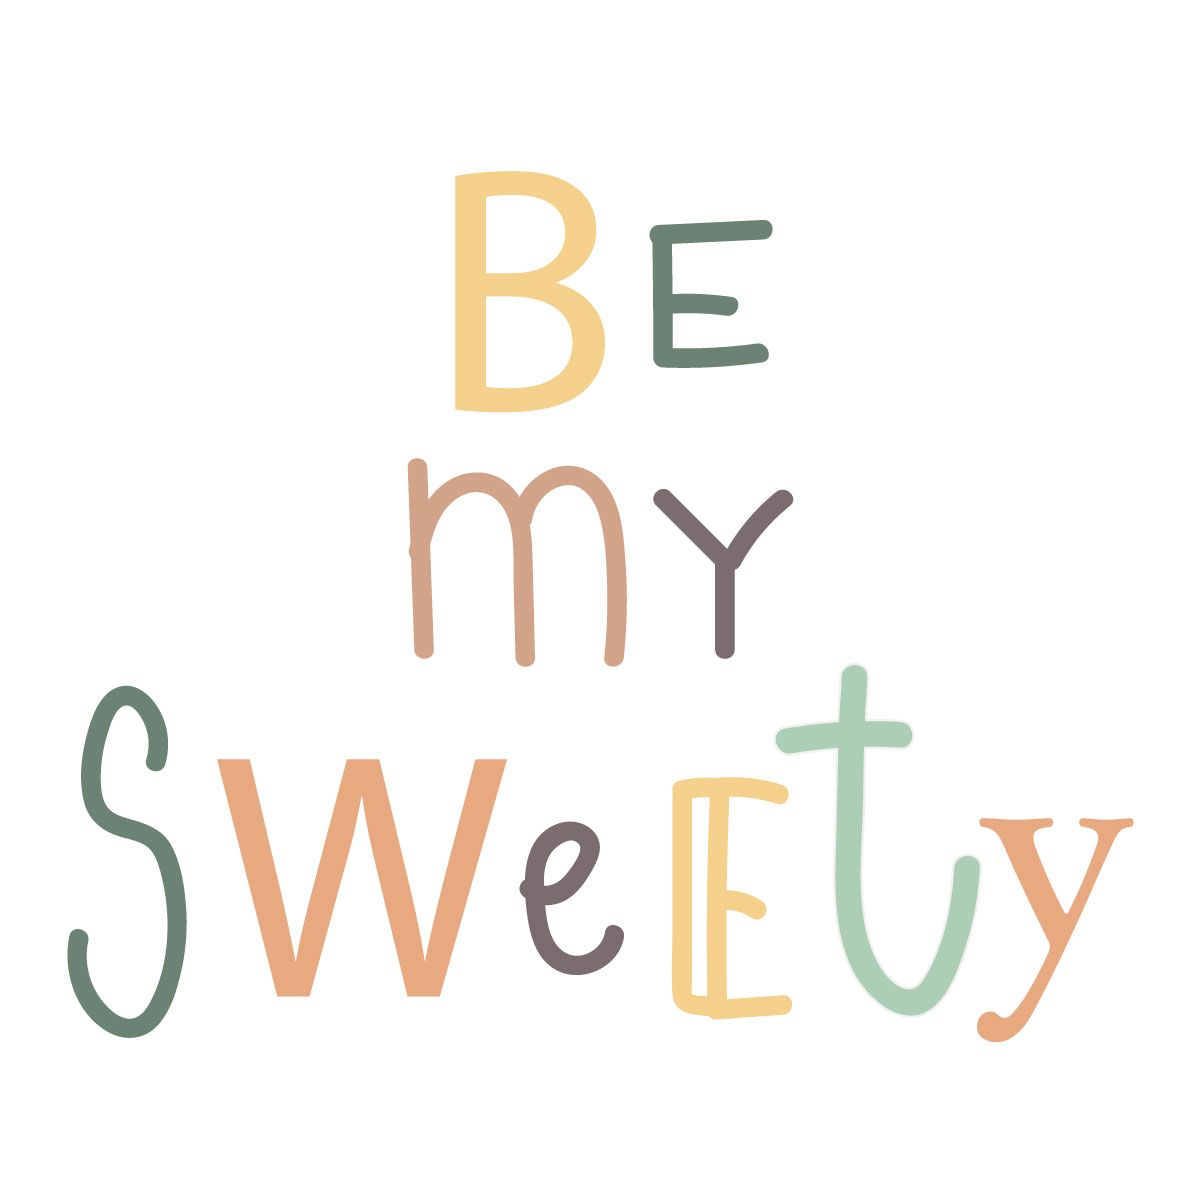 15- Be my sweety